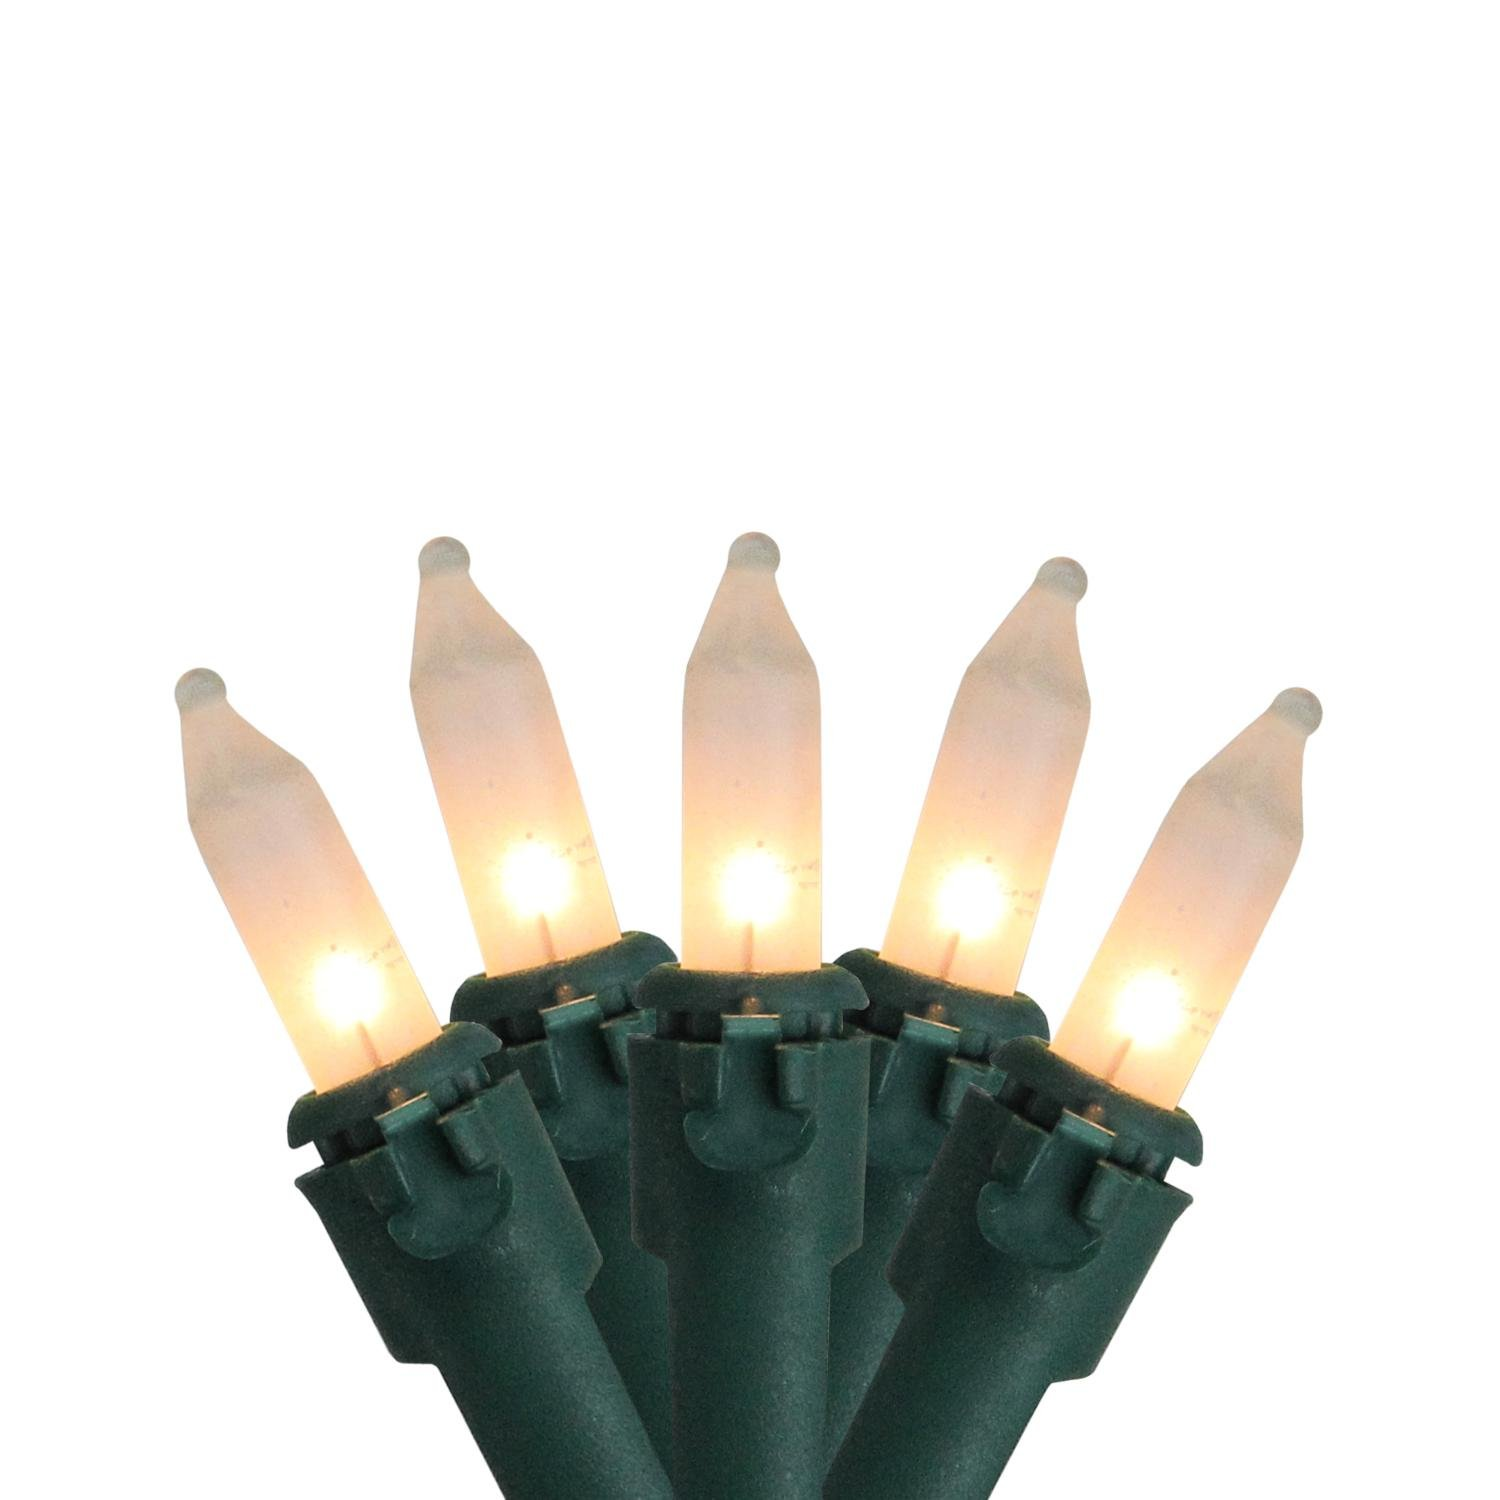 Set of 50 Frosted White Mini Christmas Lights 6'' Spacing - Green Wire